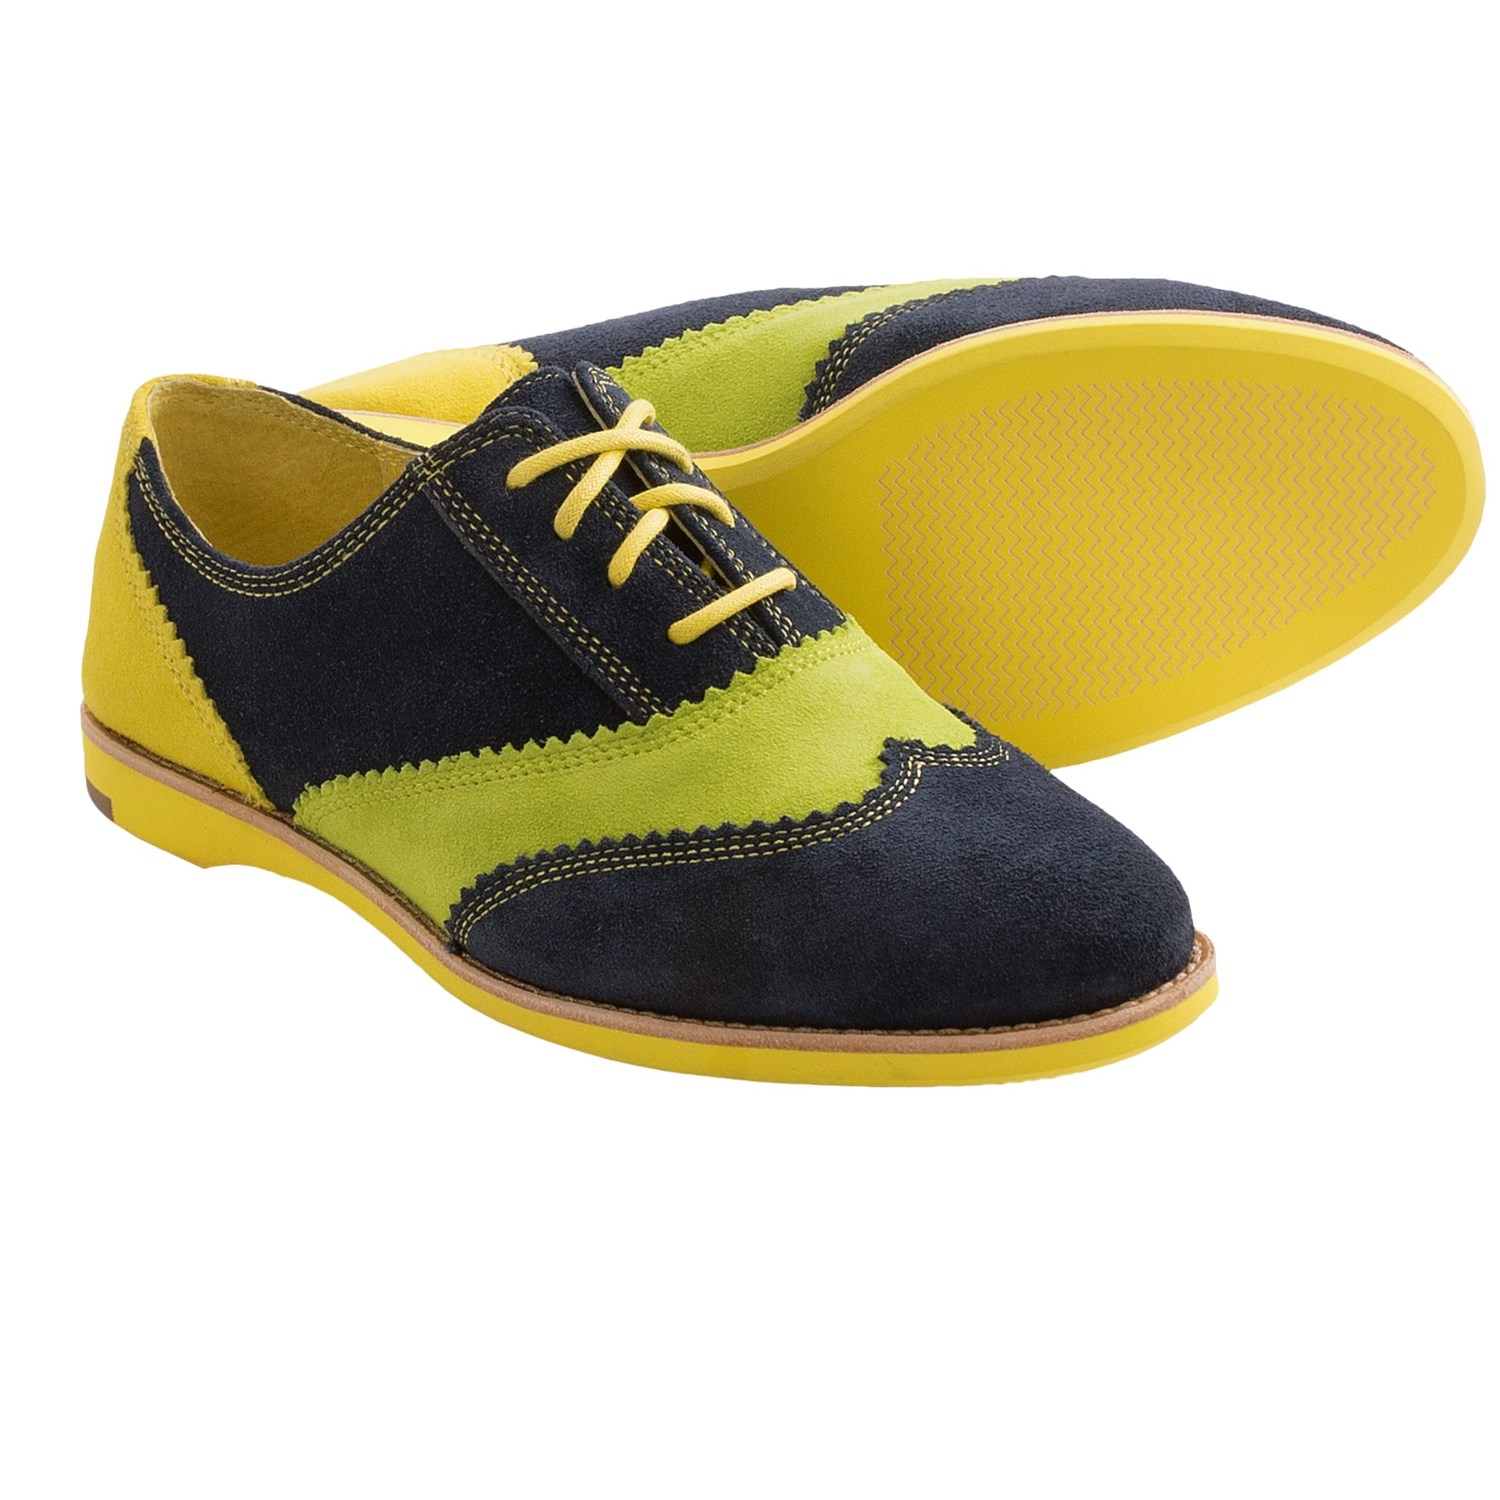 amp; Murphy Belinda Wingtip Oxford Shoes (For Women) in Navy/Kiwi/Lemon